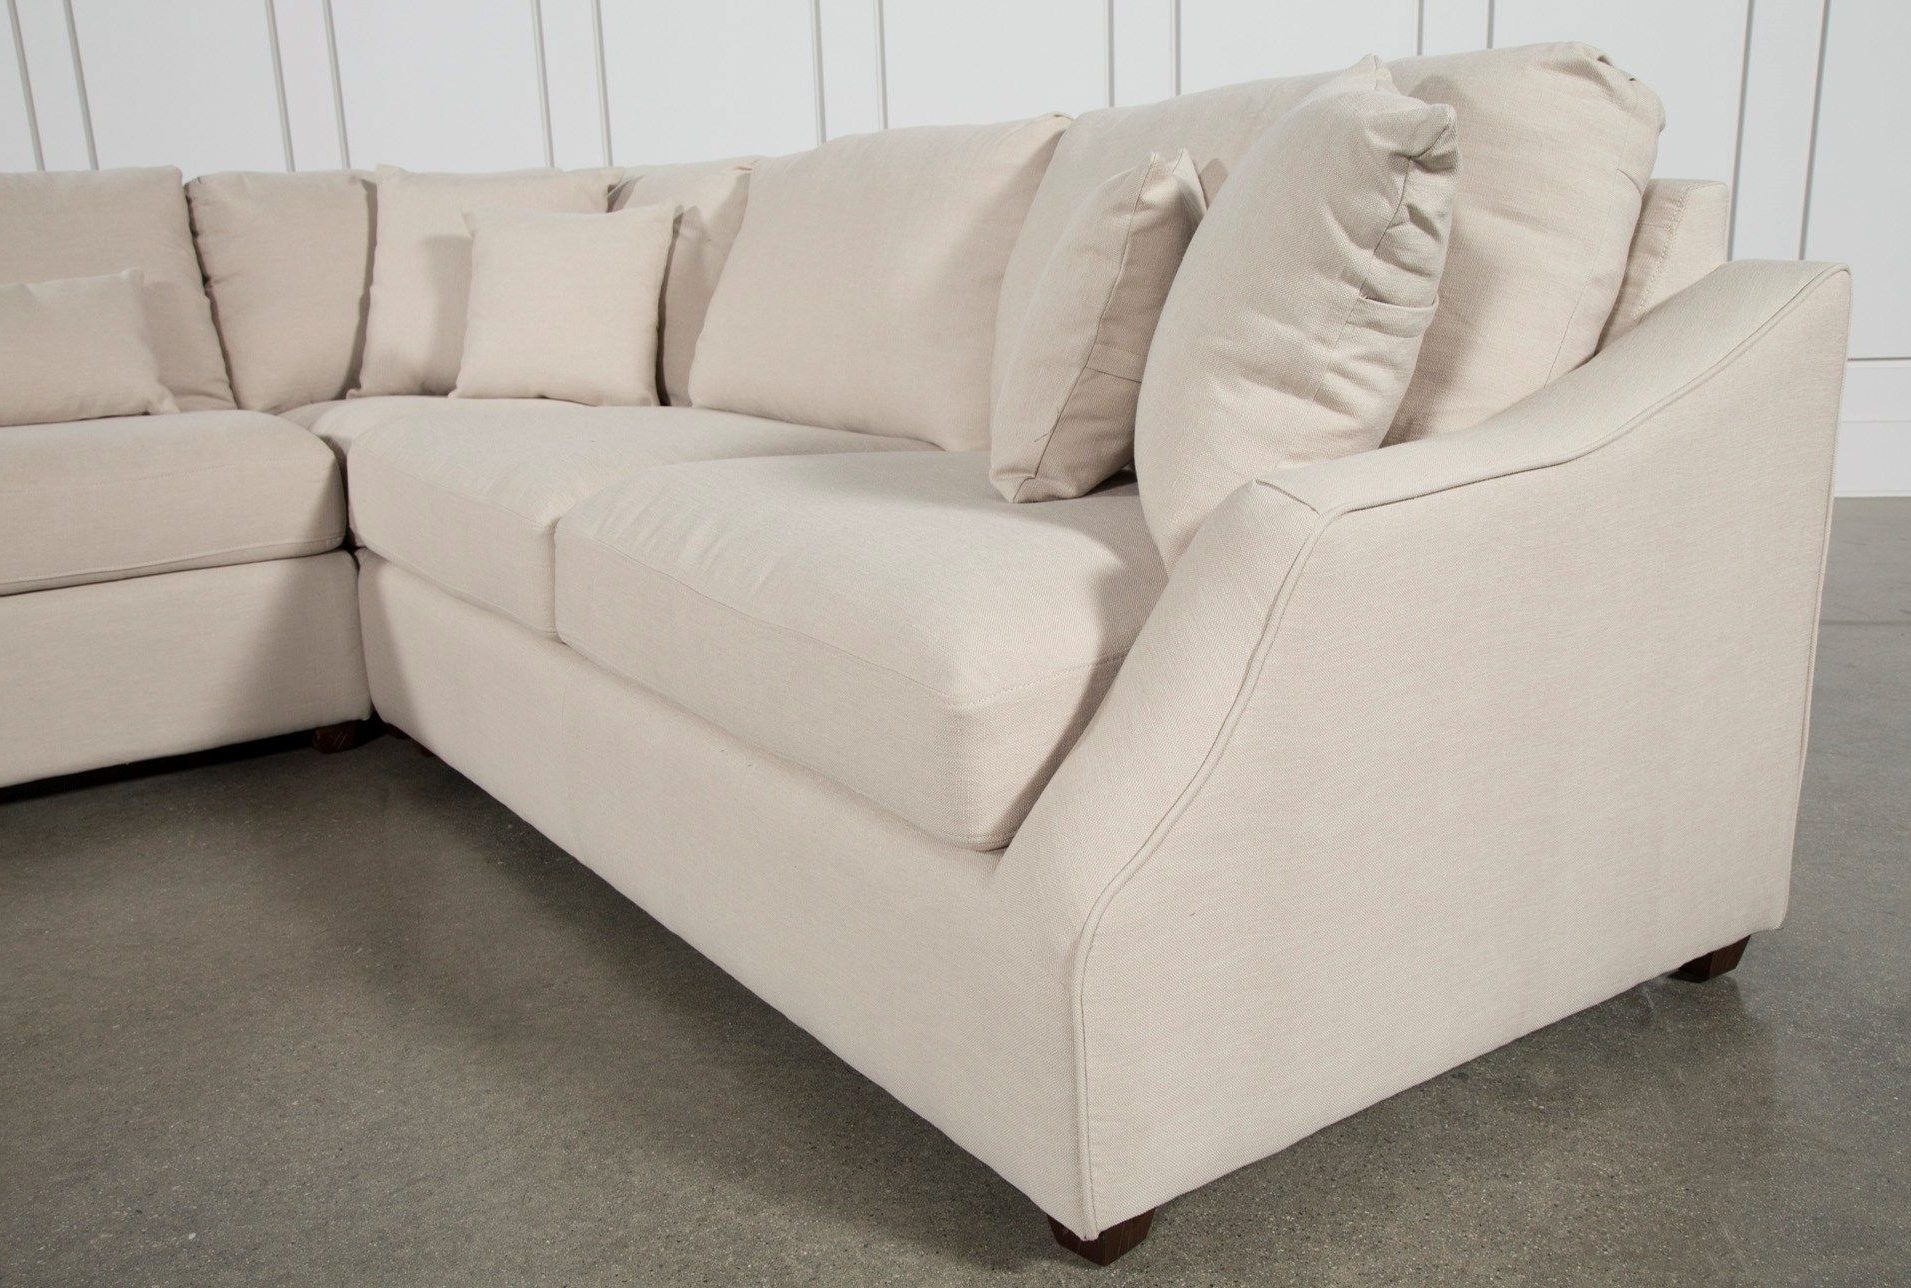 Joanna Throughout Well Known Magnolia Home Homestead Sofa Chairs By Joanna Gaines (View 8 of 20)